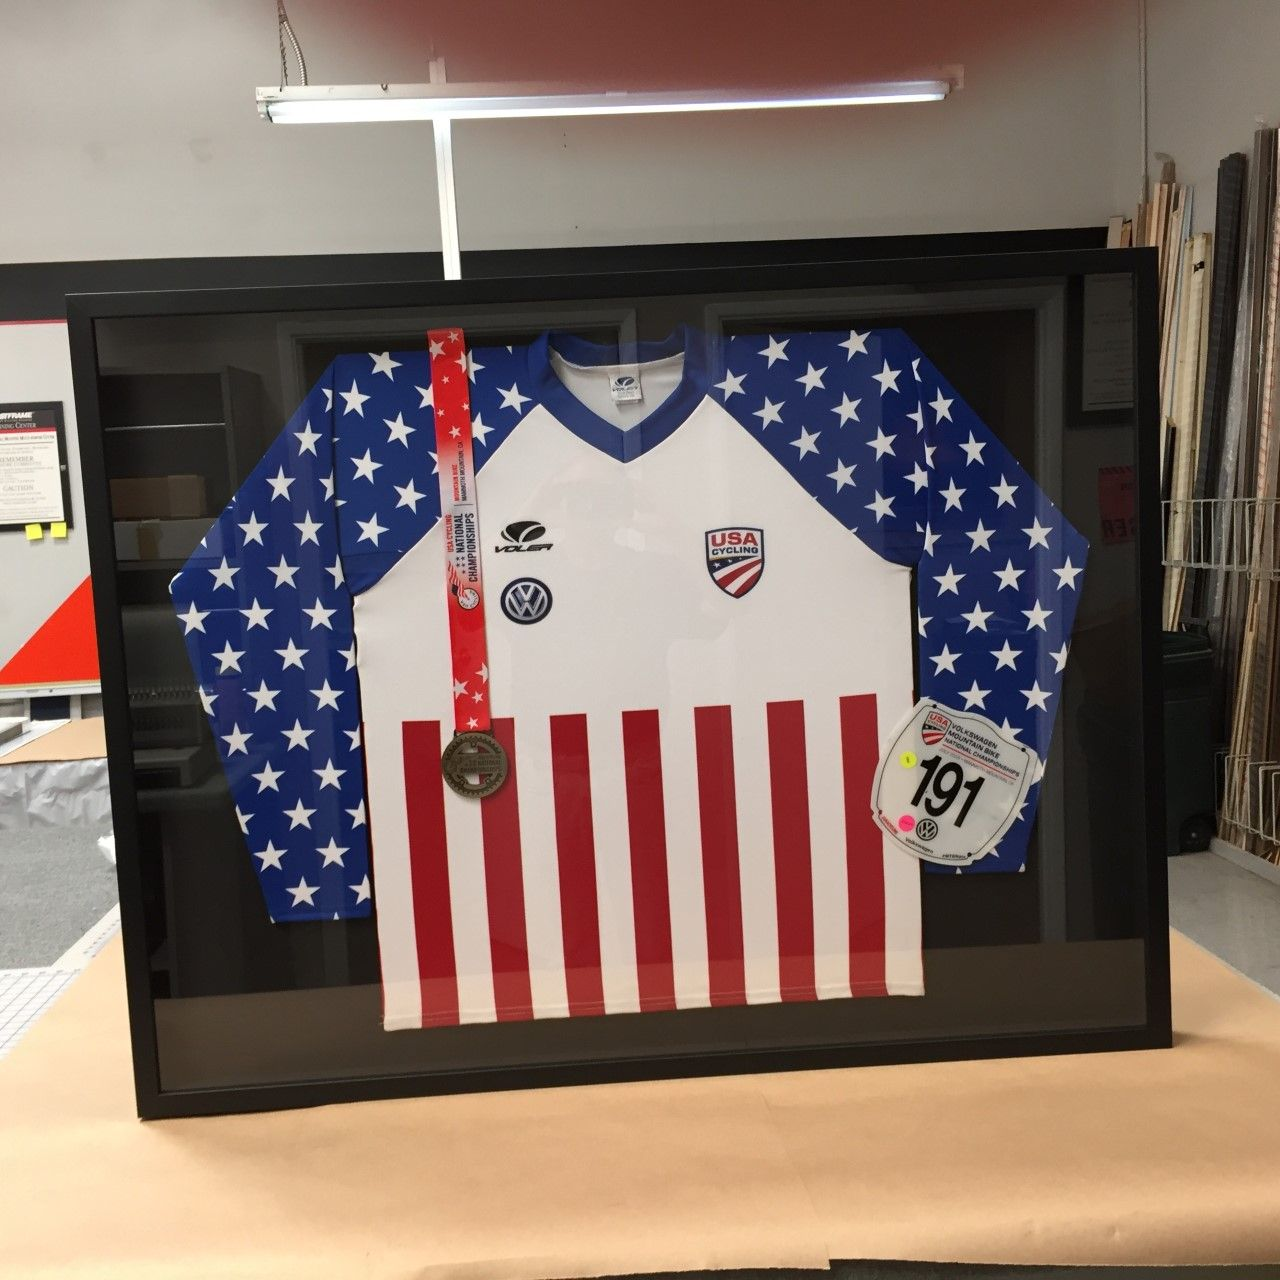 Patriotic #cycling #jersey and medal in #shadowbox using #LarsonJuhl ...